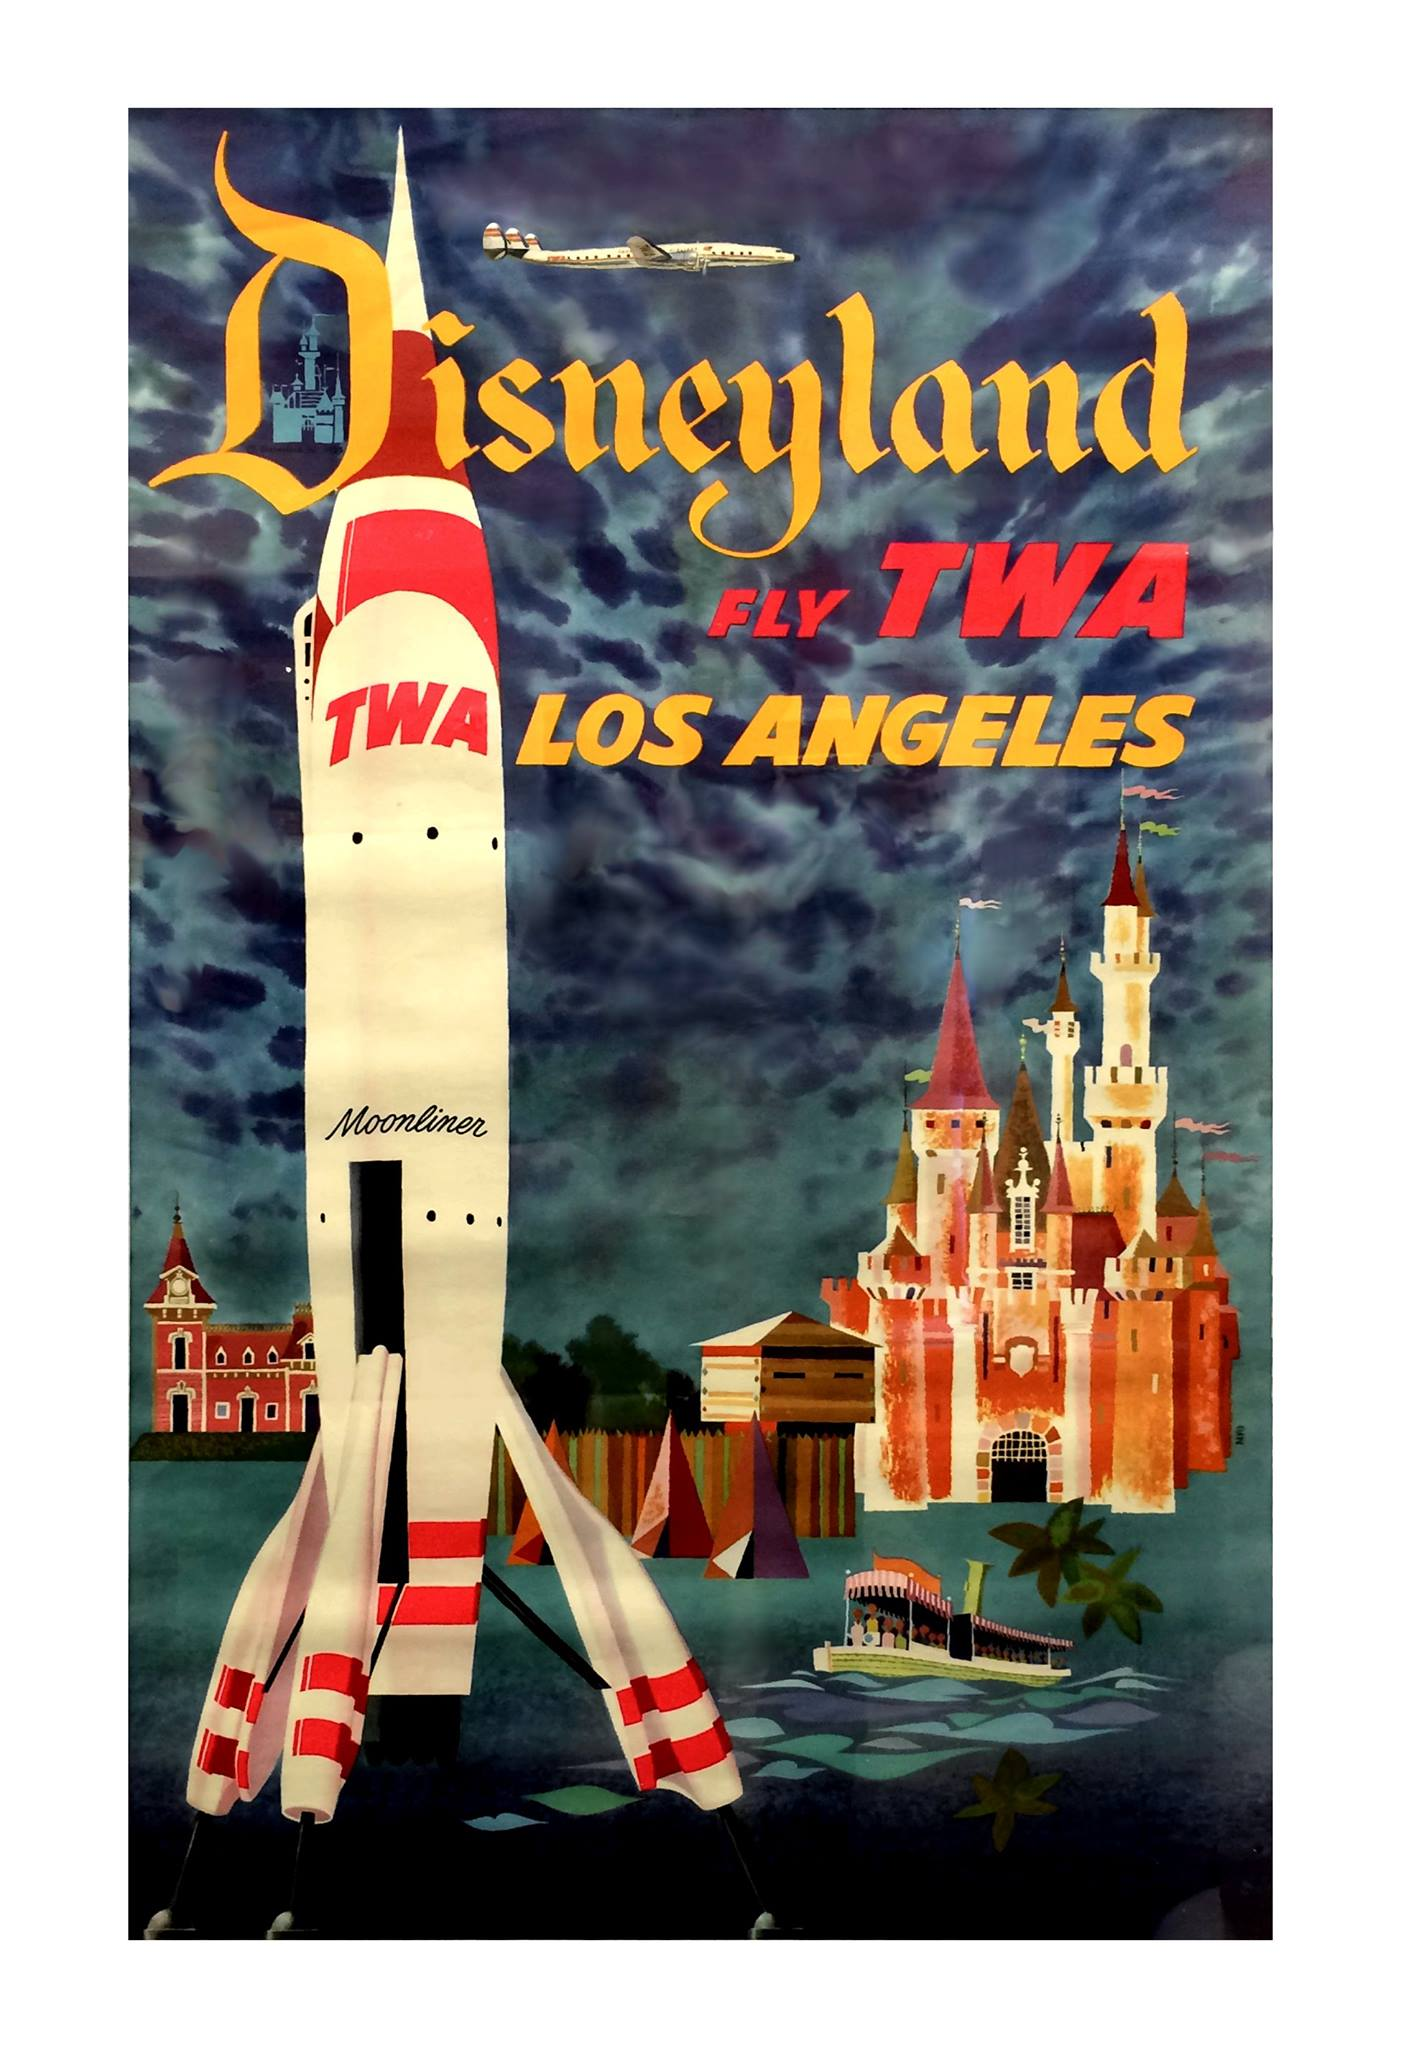 So many fun details in this TWA Disneyland poster by David Klein, who created all the amazing TWA travel posters. http://t.co/noIupgw8Xm